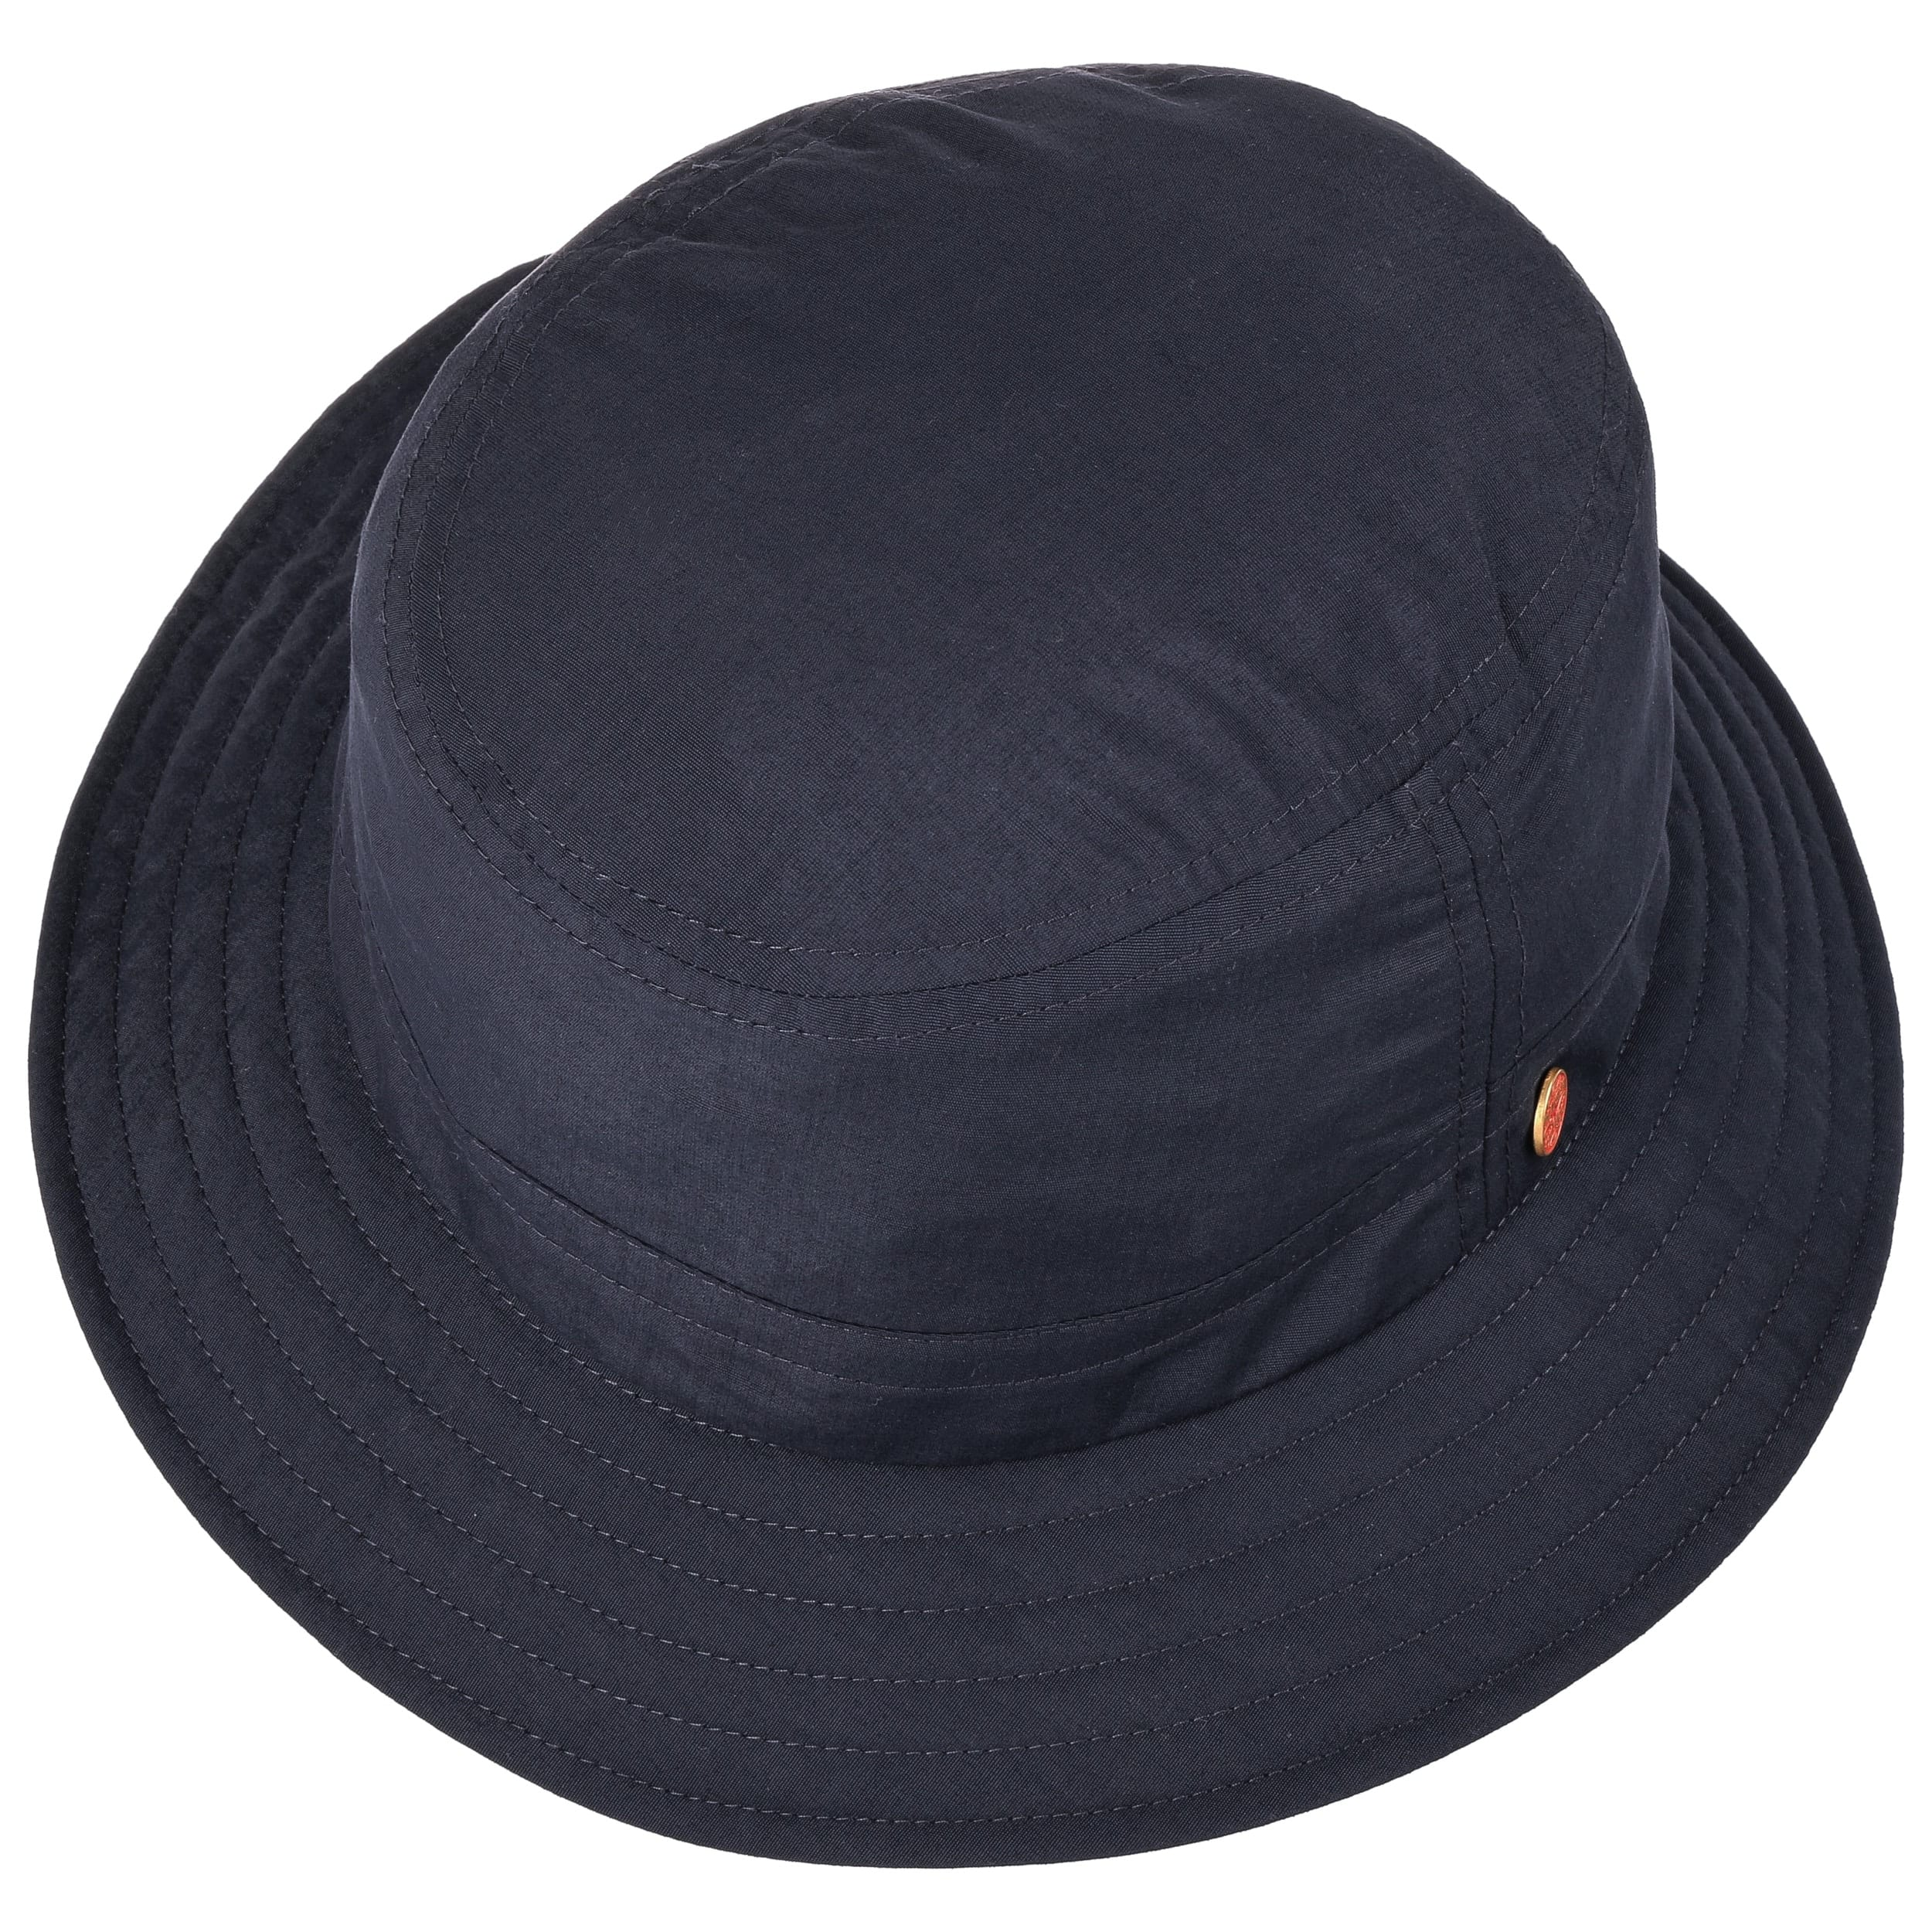 dd4ce7a55131 ... UV Protection Sun Hat by Mayser - navy 1 ...